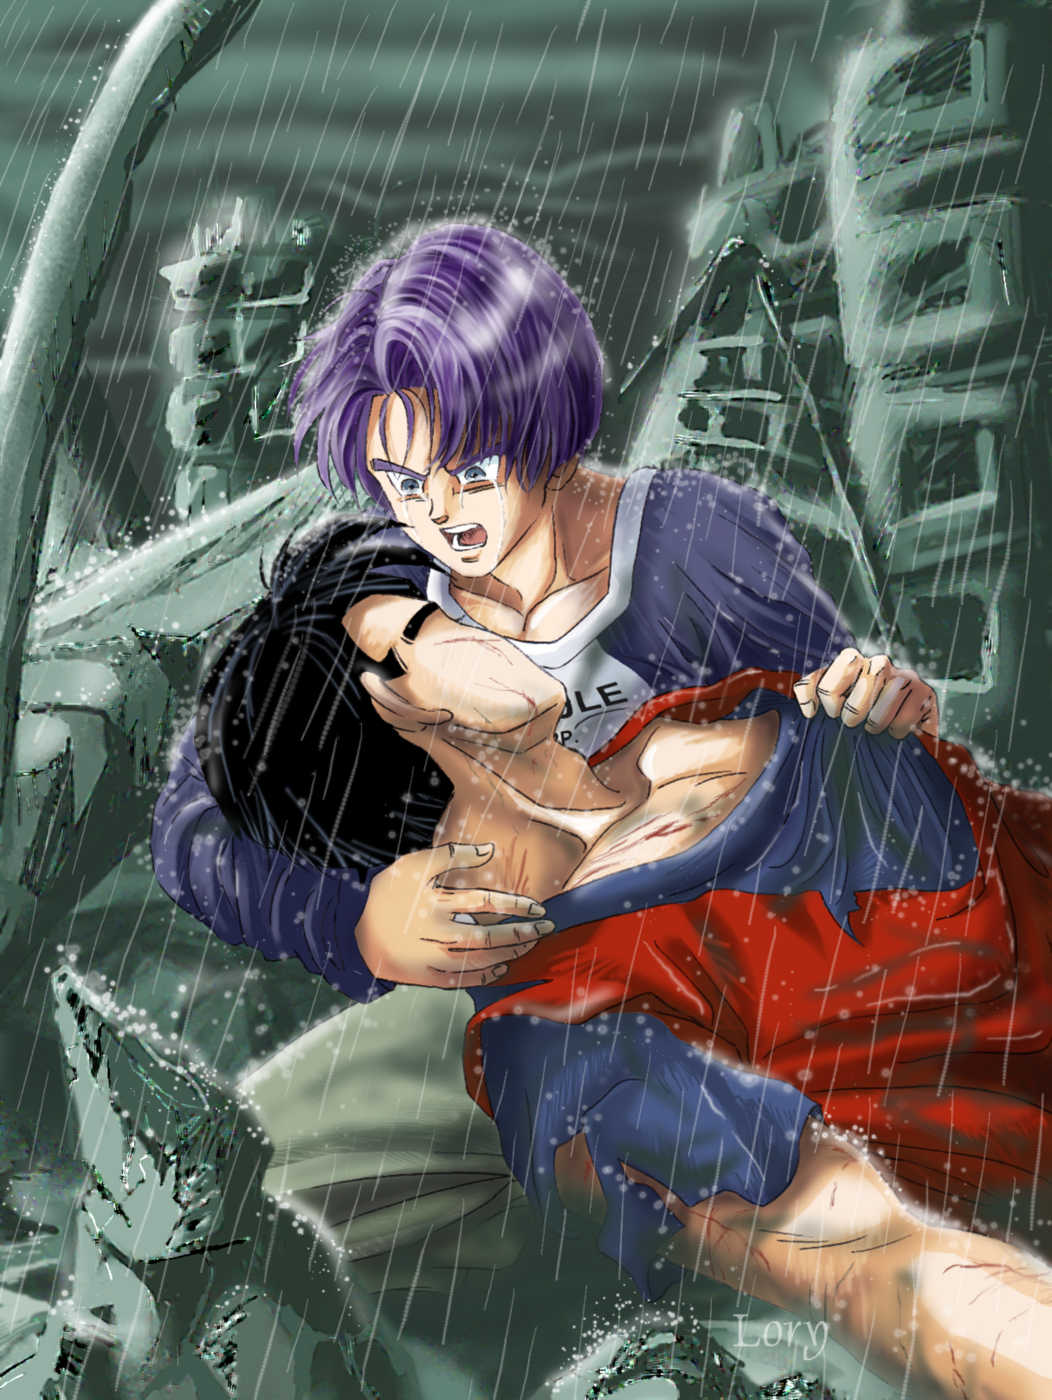 Please dont die I love you Gohan-san-Gohan x Trunks-Lory-ibDBZ Reloaded-b The Yaoi Saga -i-Pic133